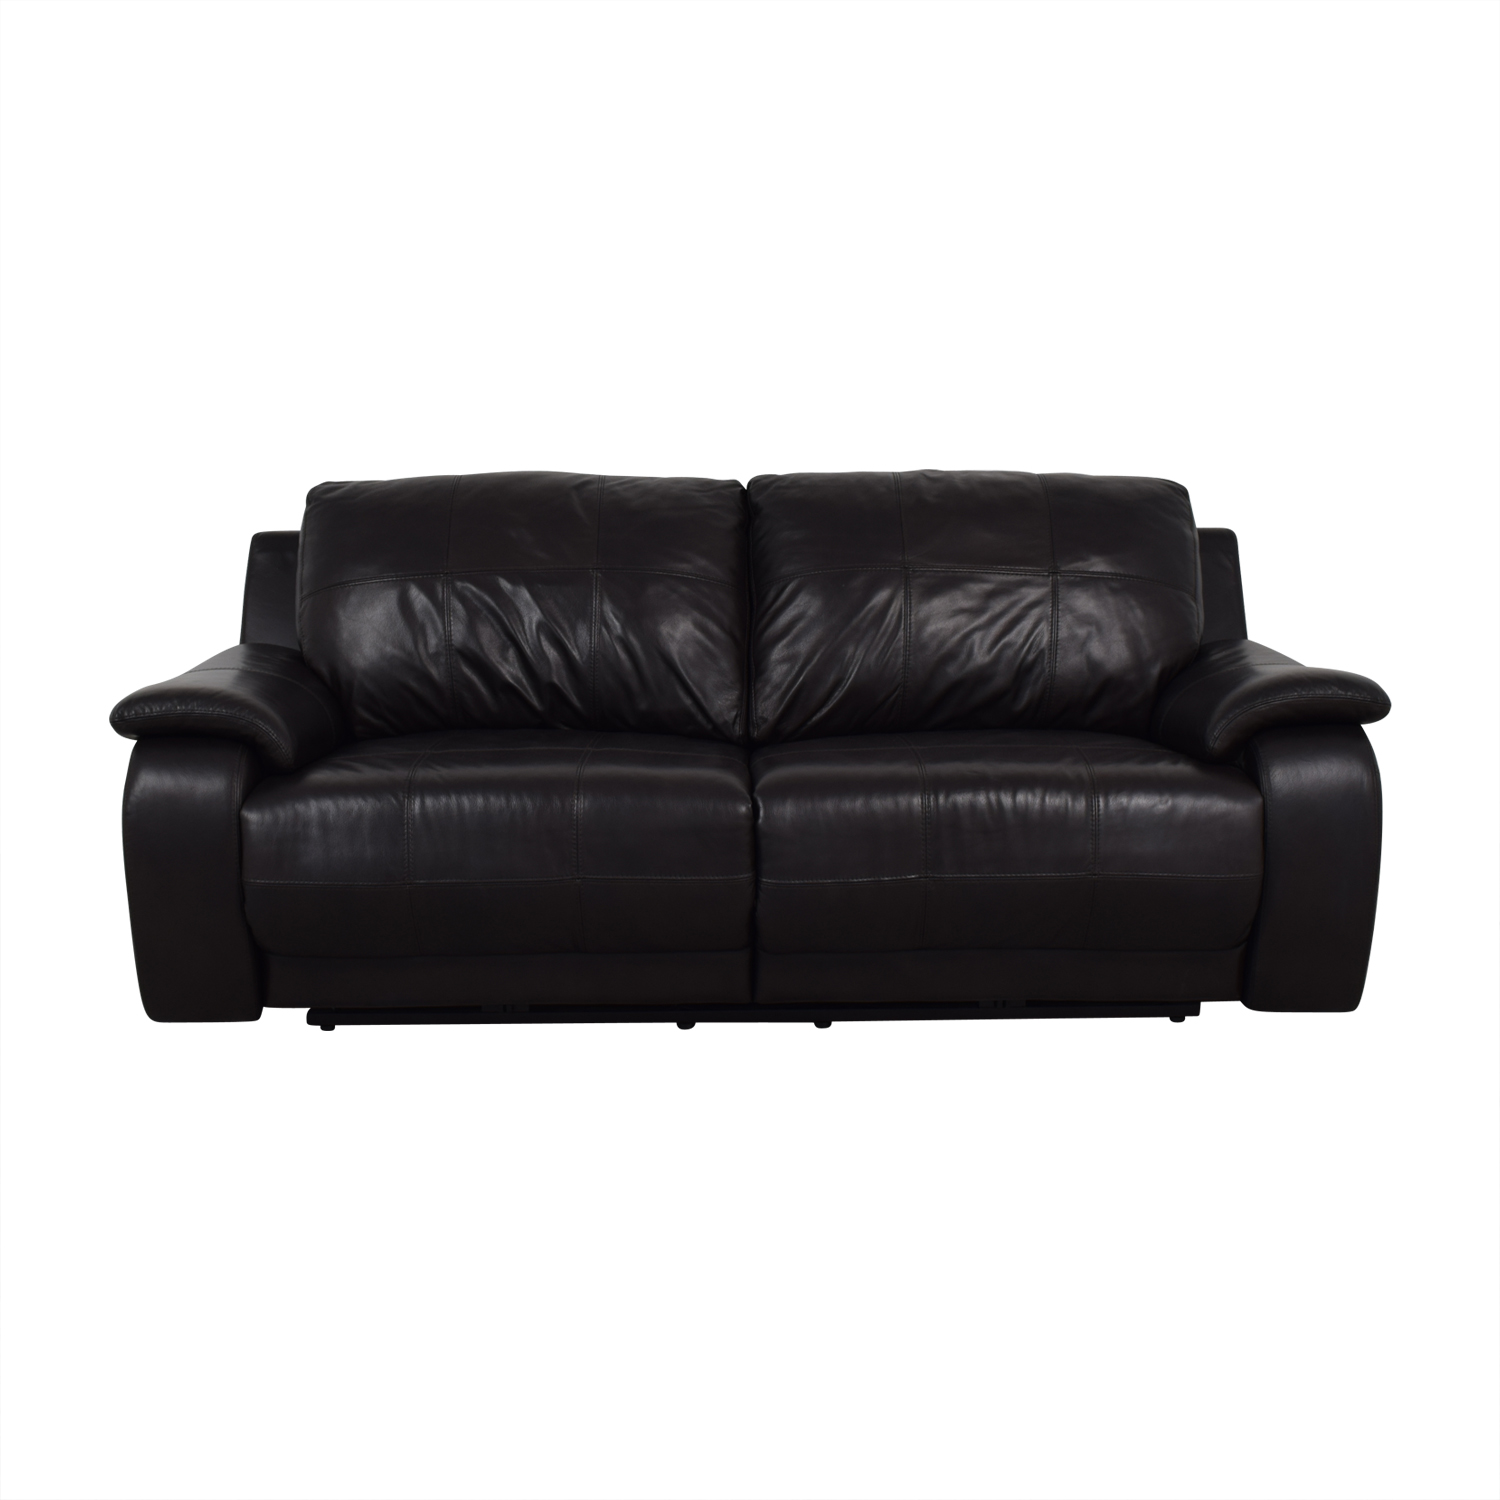 buy Raymour & Flanigan Black Two-Cushion Power Reclining Sofa Raymour & Flanigan Recliners